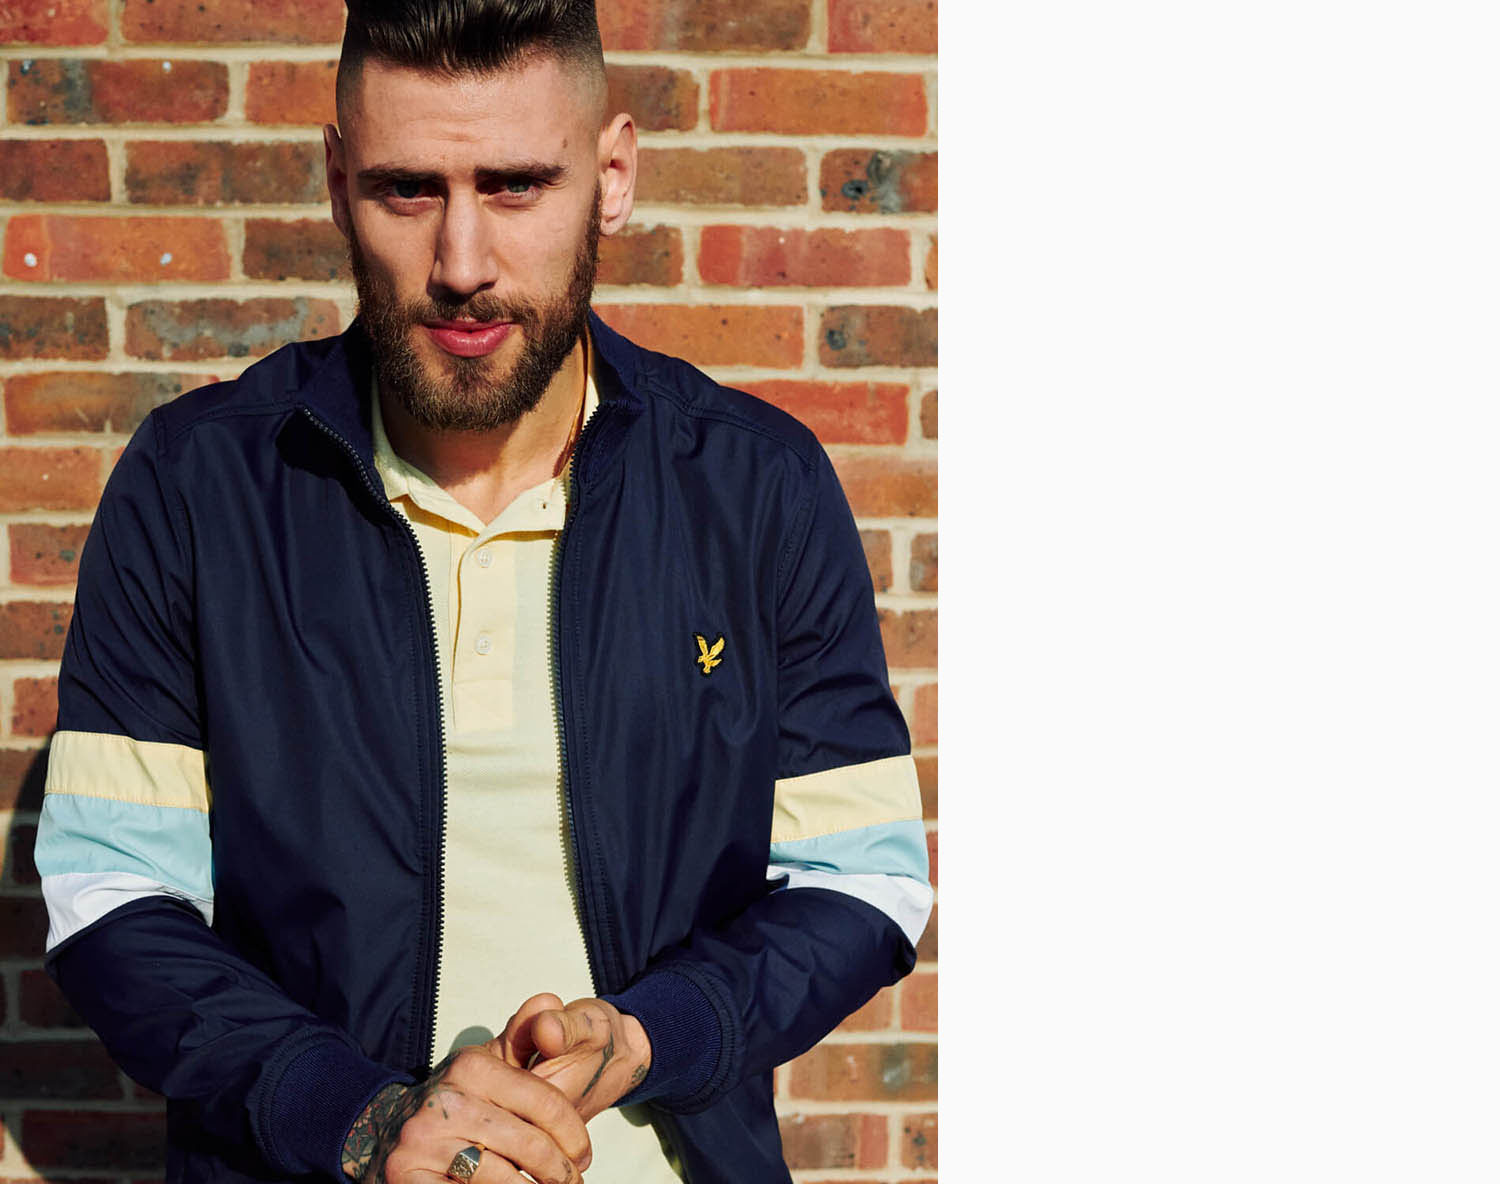 Lyle and Scott lad, brick wall by  lifestyle photographer Tim Cole